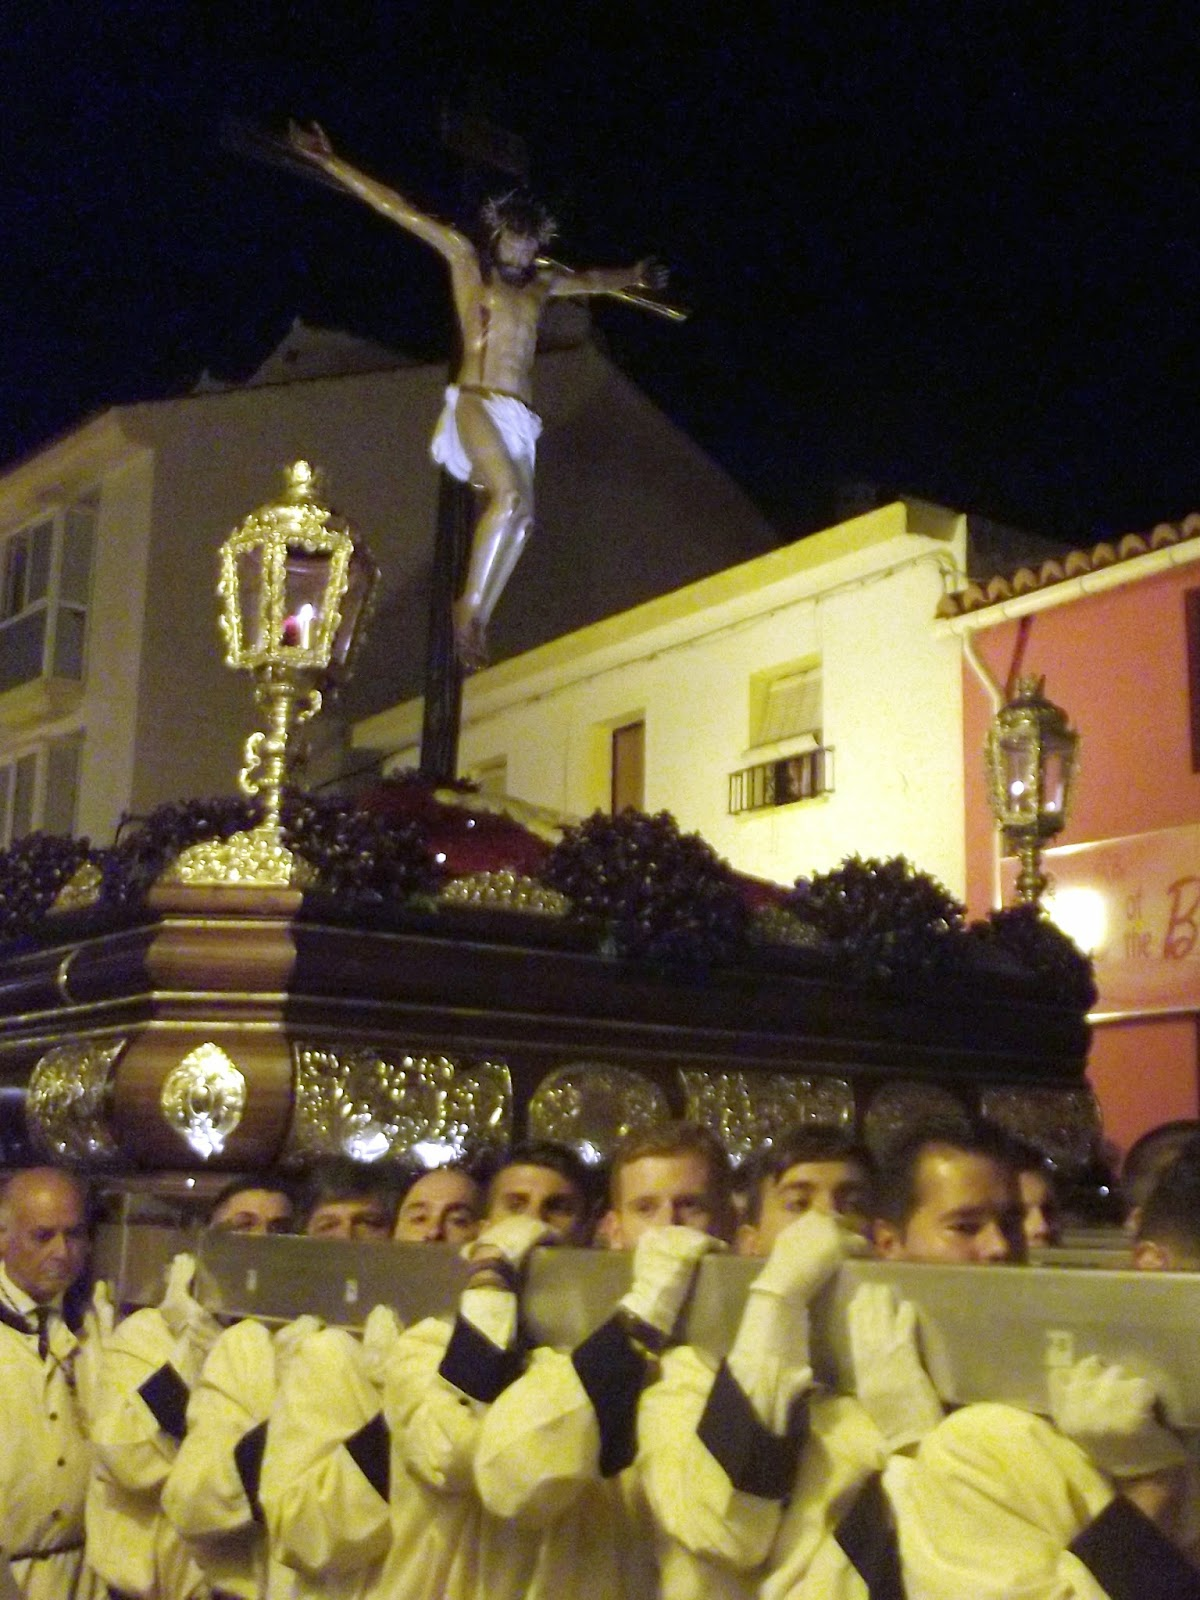 Holy Week, Passion Week, Semana Santa Malaga Processional Good Friday Tronos